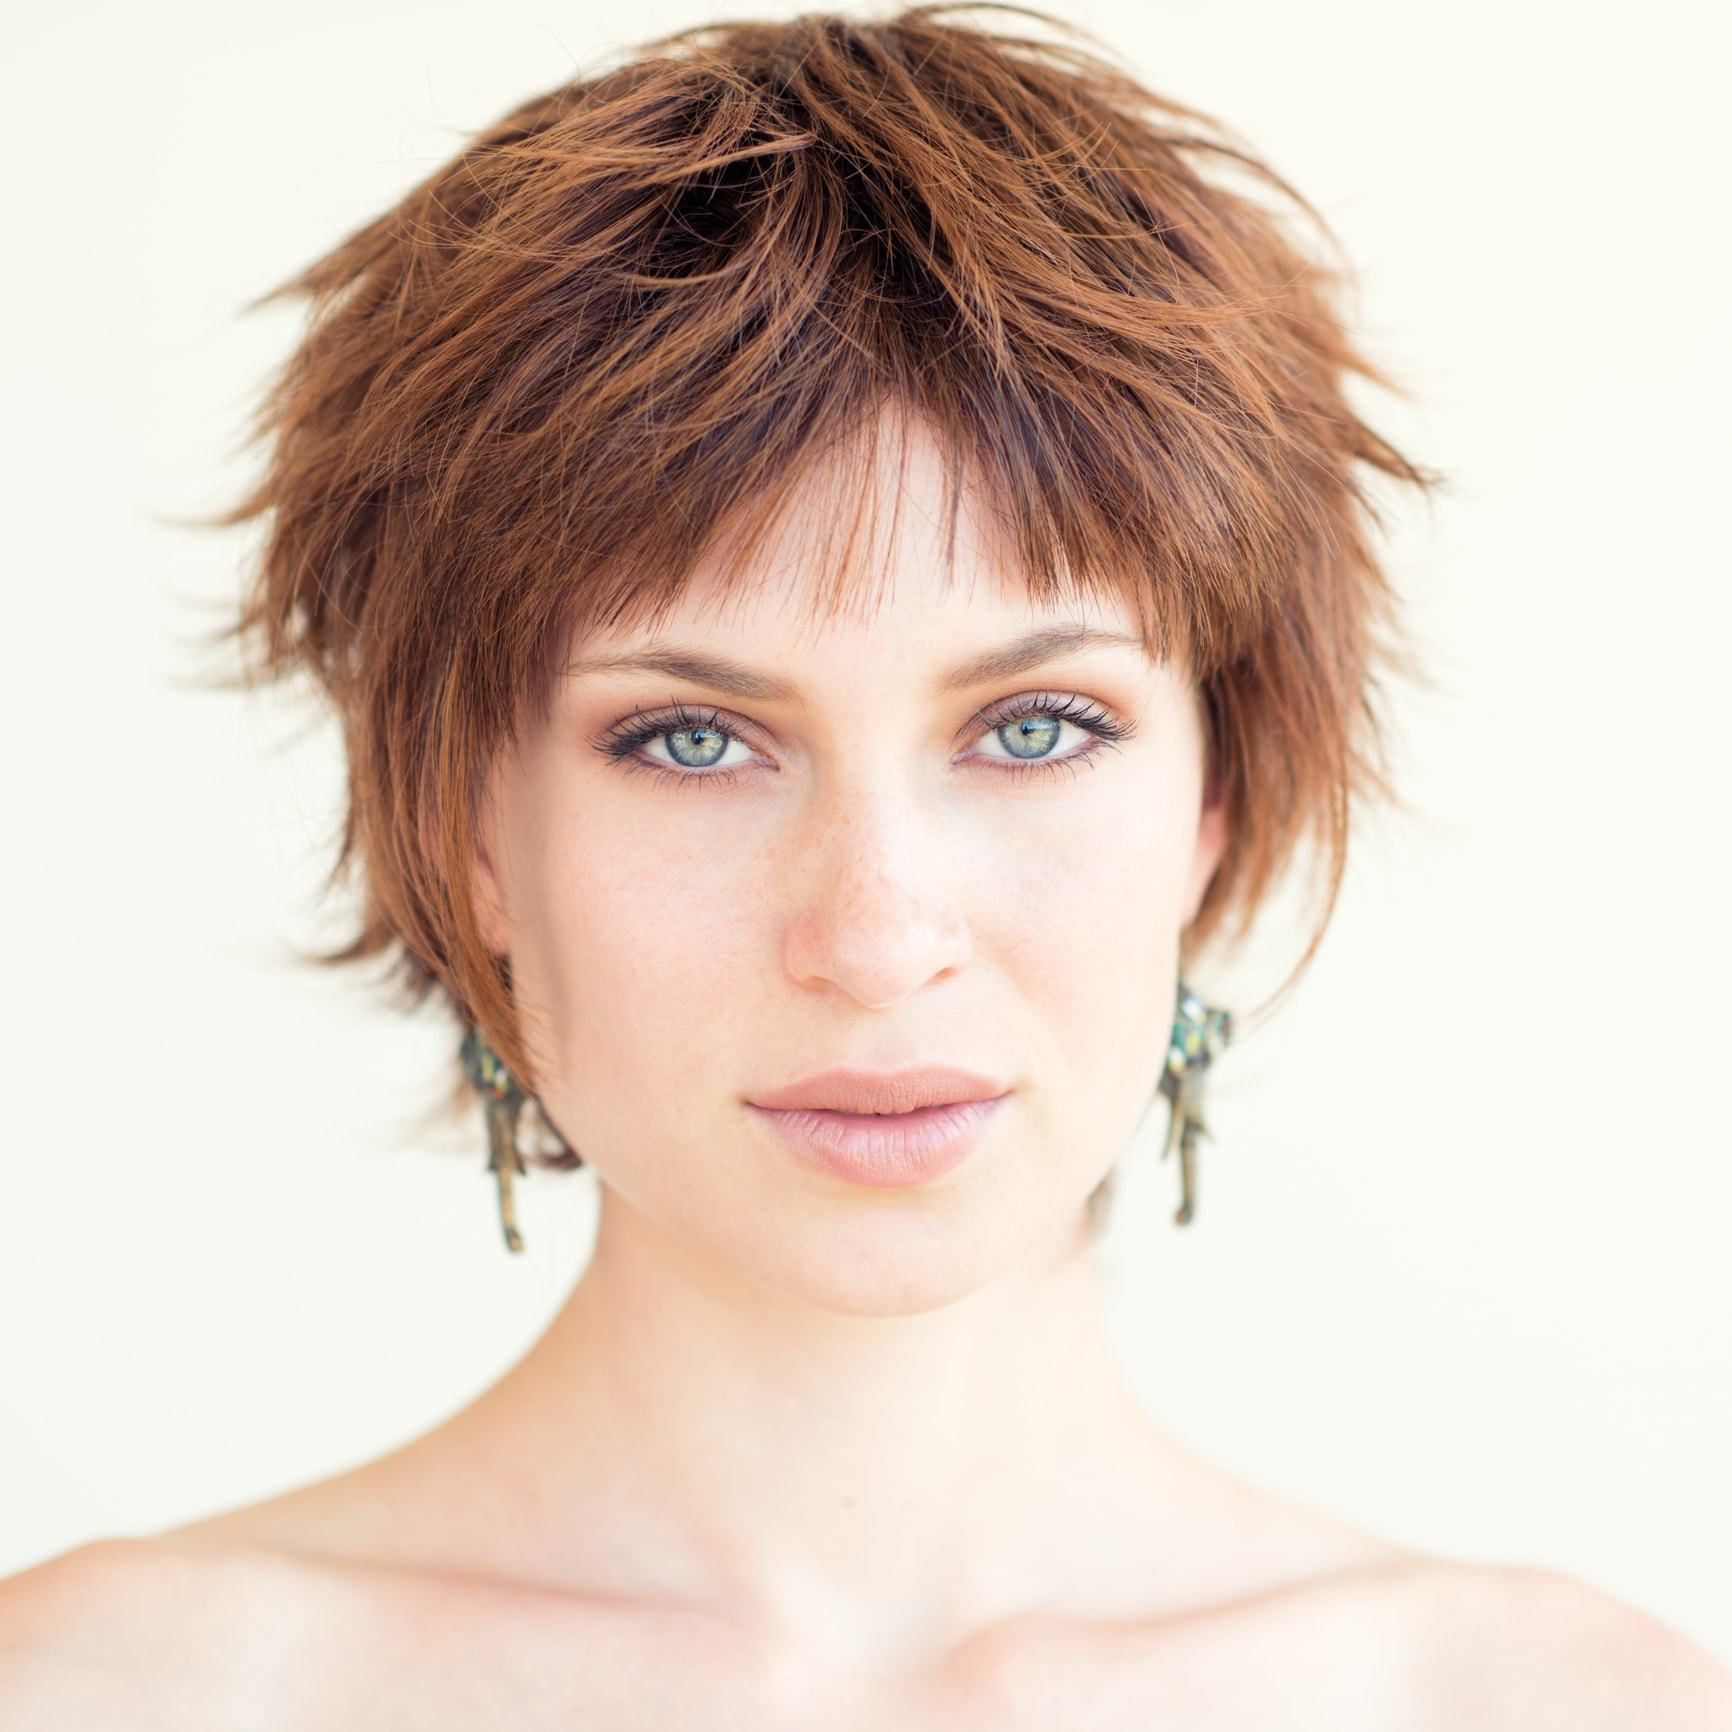 when it comes to funky hairstyles for short hair, opting for a feathered pixie as demonstrated by this istock model is great